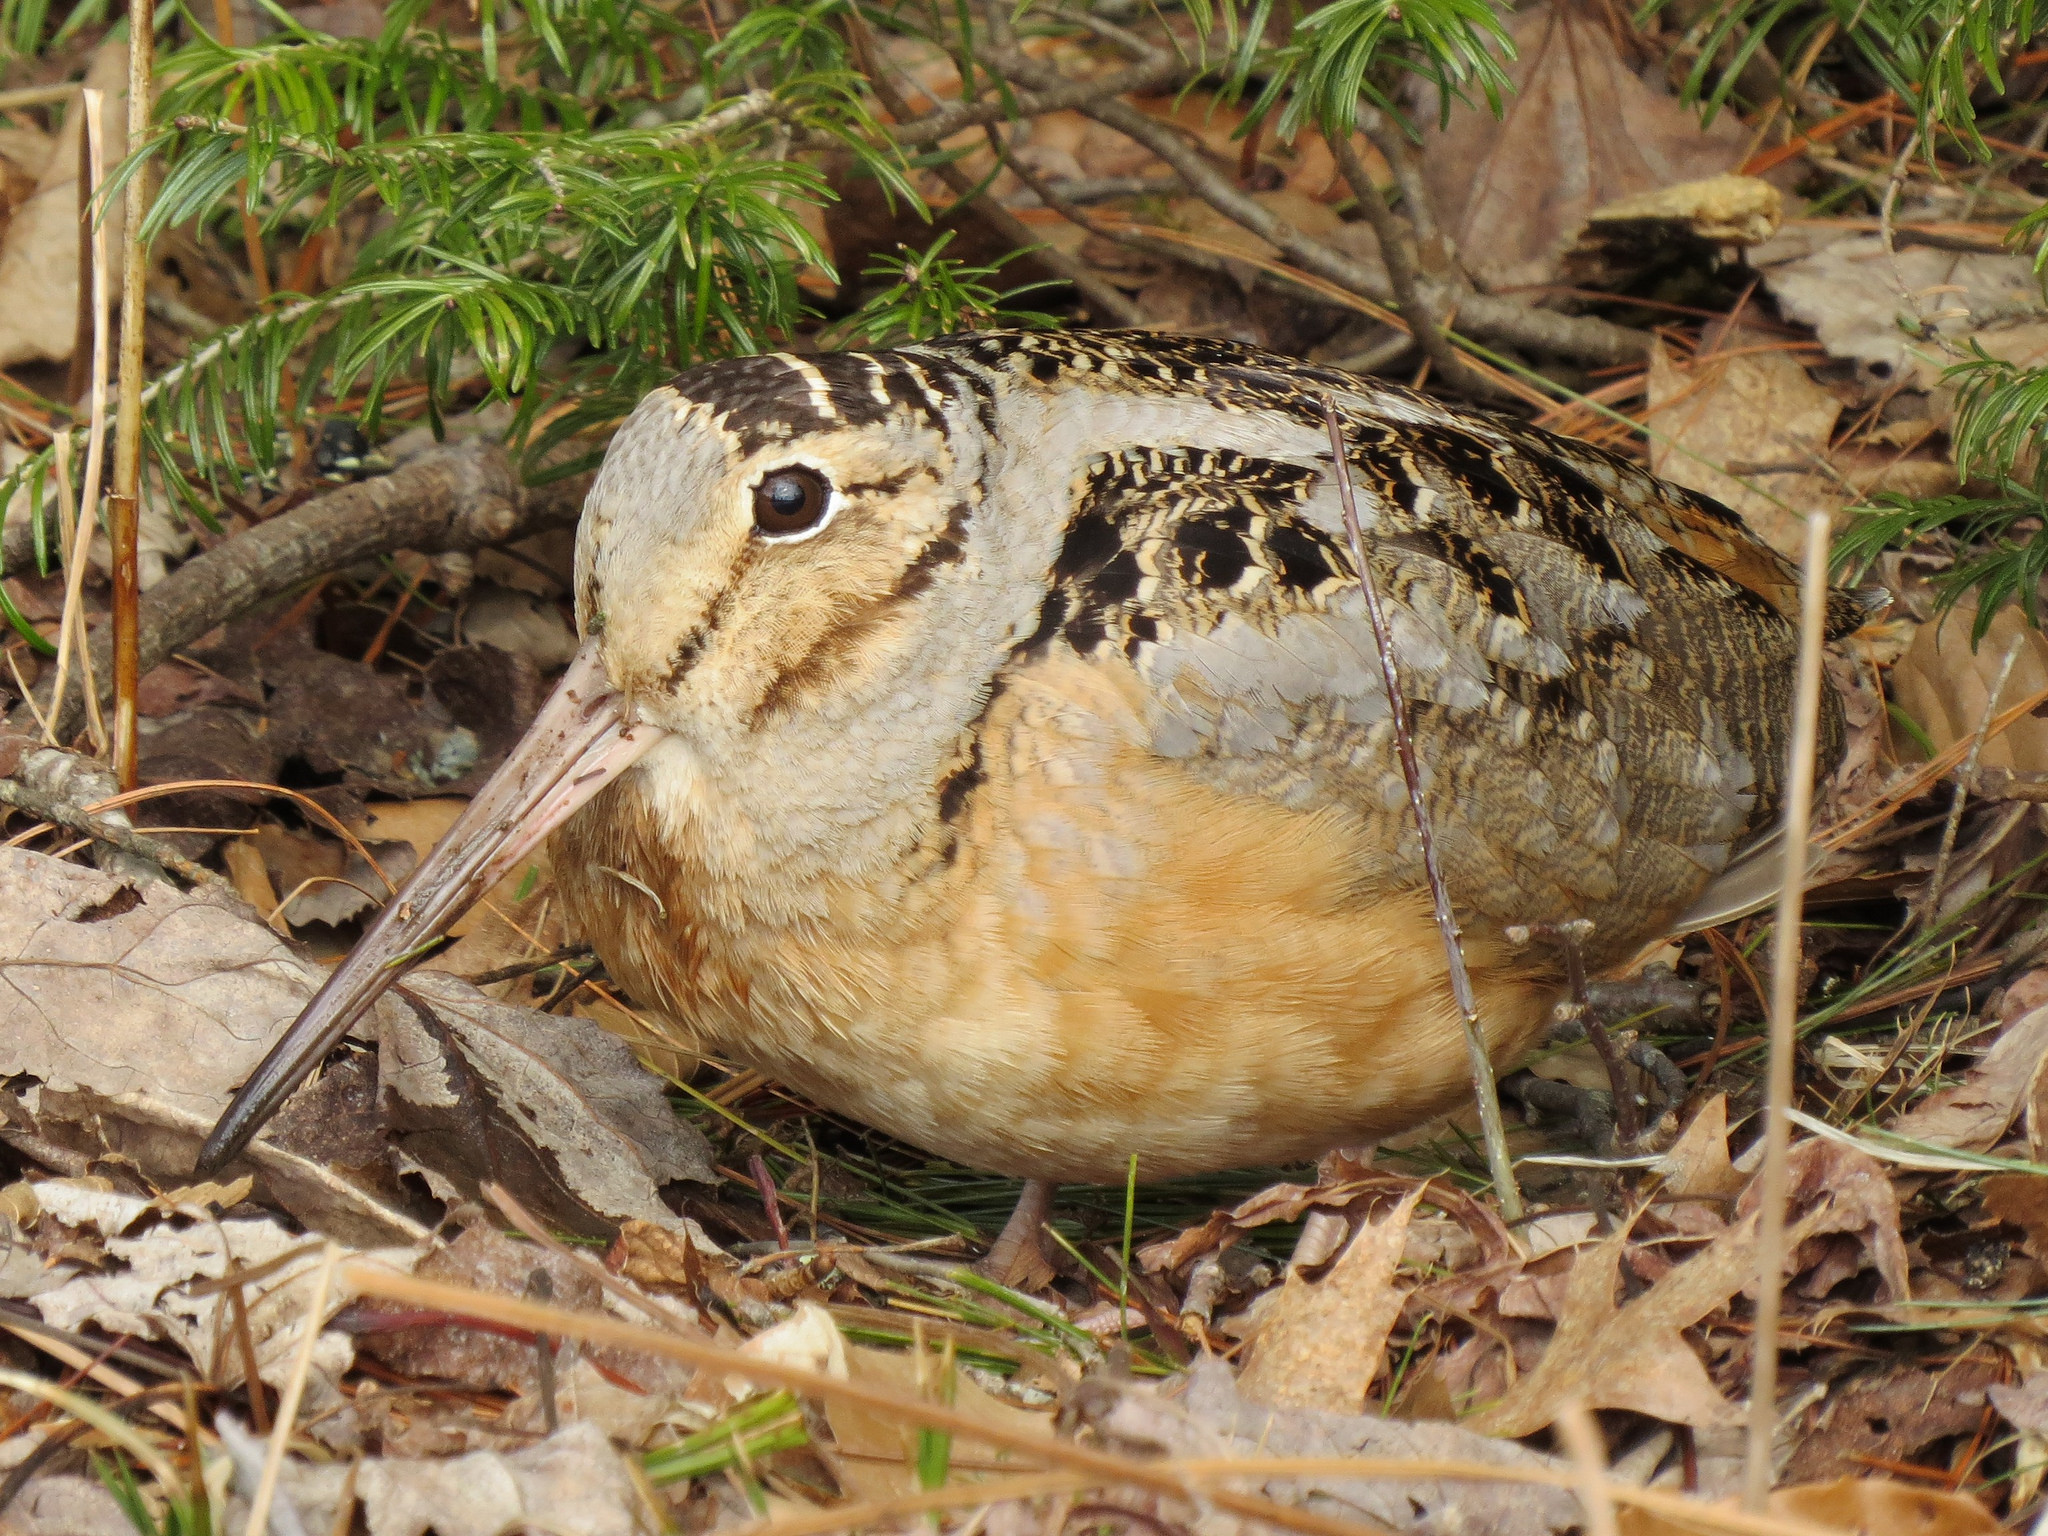 """American Woodcock  (Scolopax minor)                                                                                                                        Fyn Kynd        0   0   1   2   Seatuck Environmenal Association   1   1   2   14.0                      Normal   0           false   false   false     EN-US   JA   X-NONE                                                                                                                                                                                                                                                                                                                                                                              /* Style Definitions */ table.MsoNormalTable {mso-style-name:""""Table Normal""""; mso-tstyle-rowband-size:0; mso-tstyle-colband-size:0; mso-style-noshow:yes; mso-style-priority:99; mso-style-parent:""""""""; mso-padding-alt:0in 5.4pt 0in 5.4pt; mso-para-margin:0in; mso-para-margin-bottom:.0001pt; mso-pagination:widow-orphan; font-size:12.0pt; font-family:Cambria; mso-ascii-font-family:Cambria; mso-ascii-theme-font:minor-latin; mso-hansi-font-family:Cambria; mso-hansi-theme-font:minor-latin;}     © 2014"""